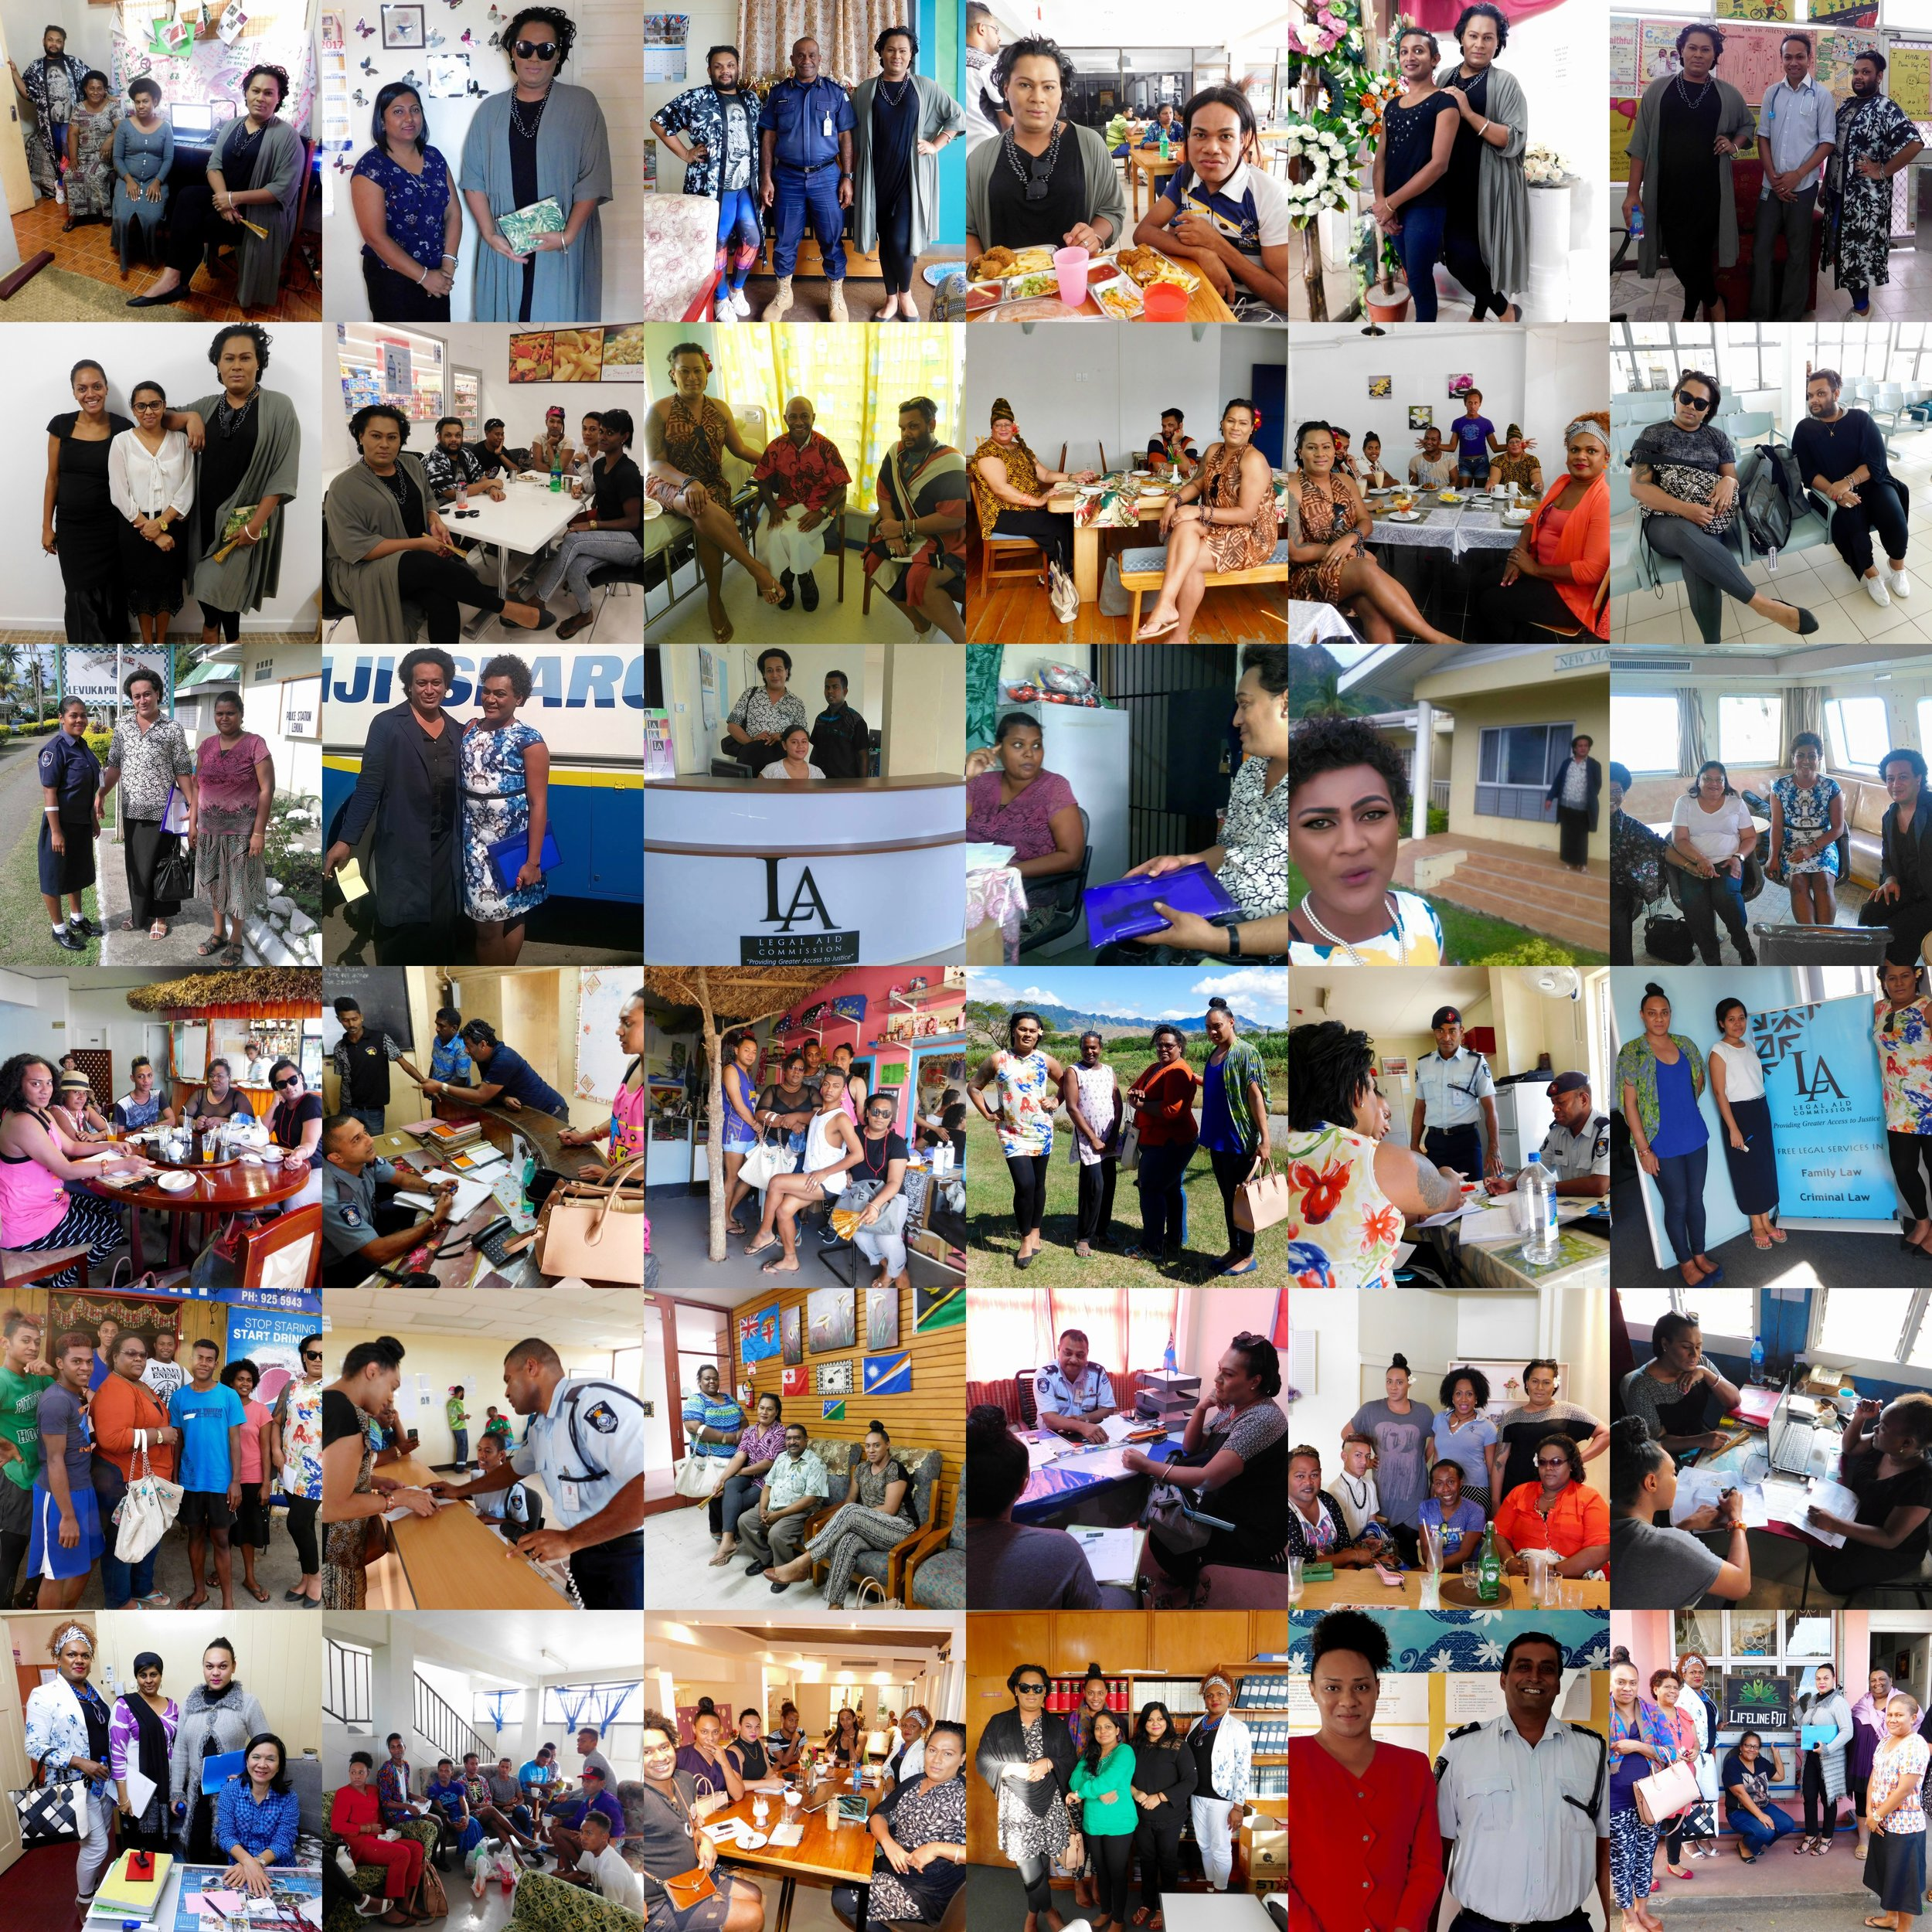 Haus of Khameleon has successfully conducted its scoping research exercise in four main divisions as follows: Northern Division (Labasa & Savusavu), Western Division (Sigatoka, Nadi, Lautoka, Ba, Rakiraki, Tavua), Eastern Division (Levuka), Central Division (Navua, Lami-Suva-Nausori Corridor).The main aim of the scoping visit was to establish needed information regarding the research including research logistics, the size of the local TG-women population, venues for the Focus Group Discussions (FGDs), catering for the 10 FGD participants, security assessments of each sites, contact of key informant interviewees (service providers)and others.